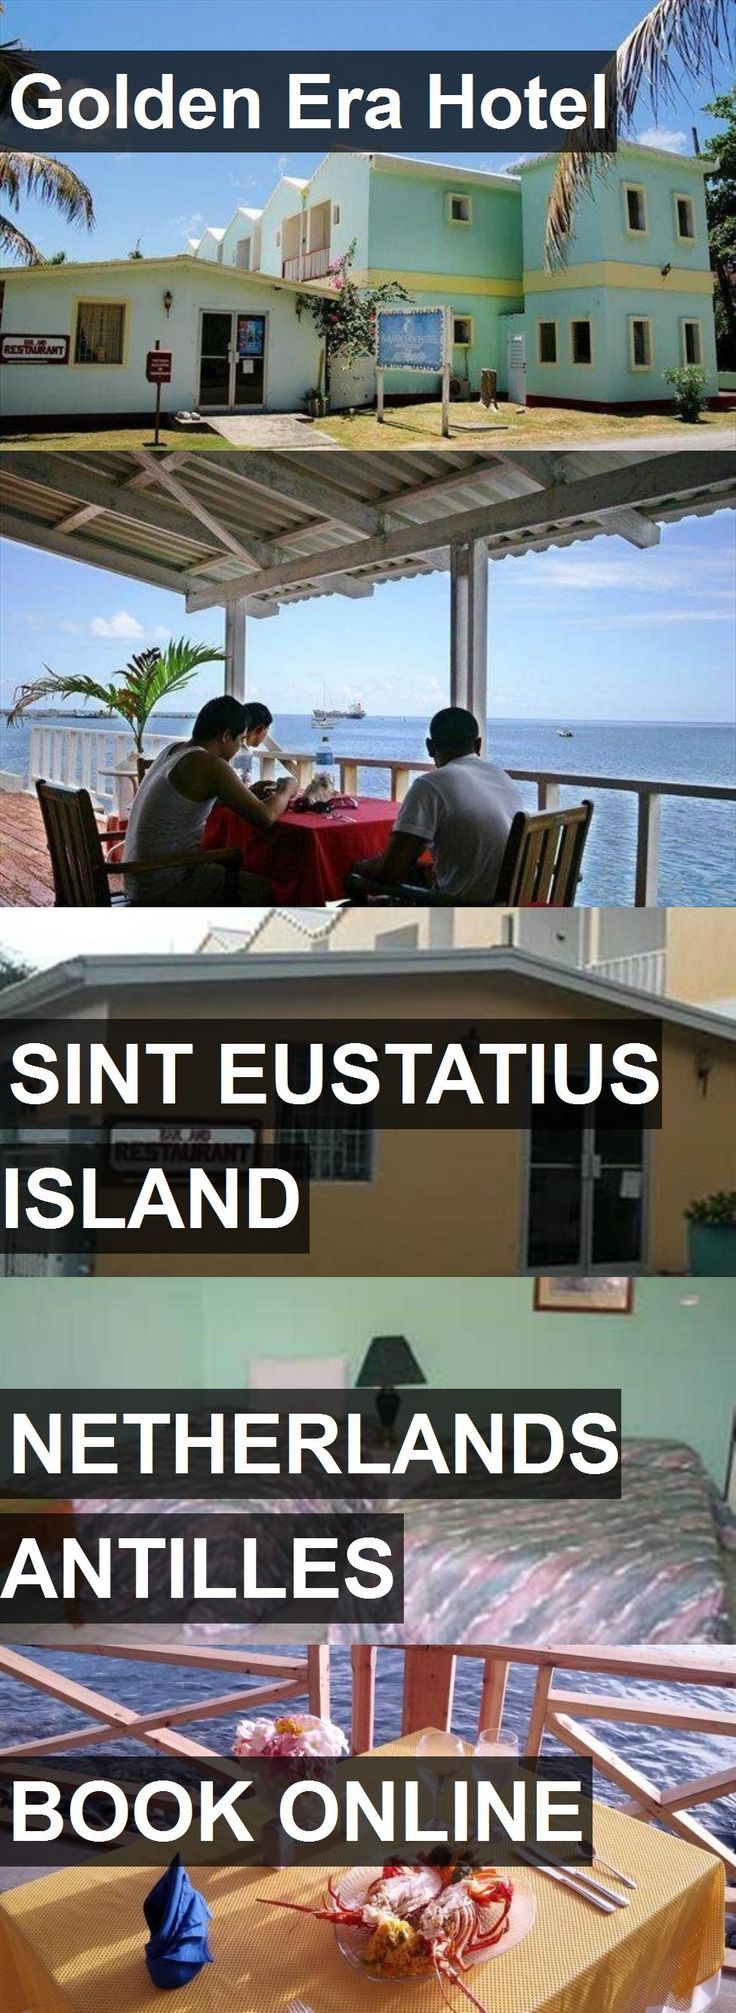 Golden Era Hotel in Sint Eustatius Island